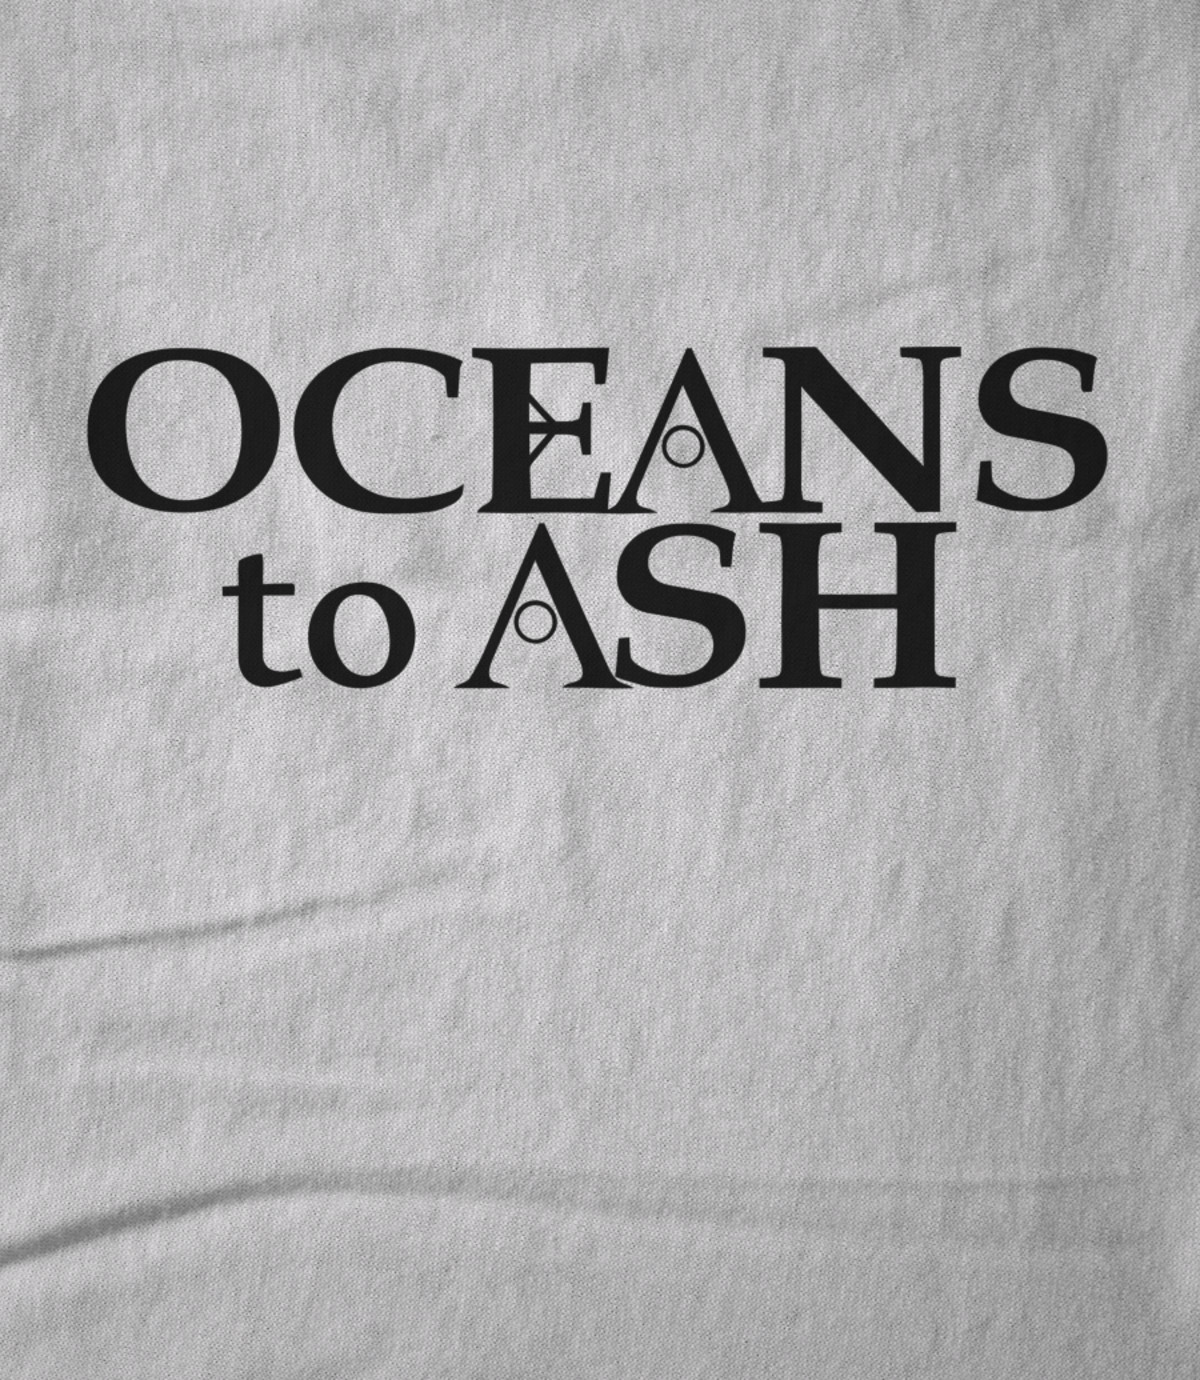 Oceans to ash oceans to ash   name   white 1537978399